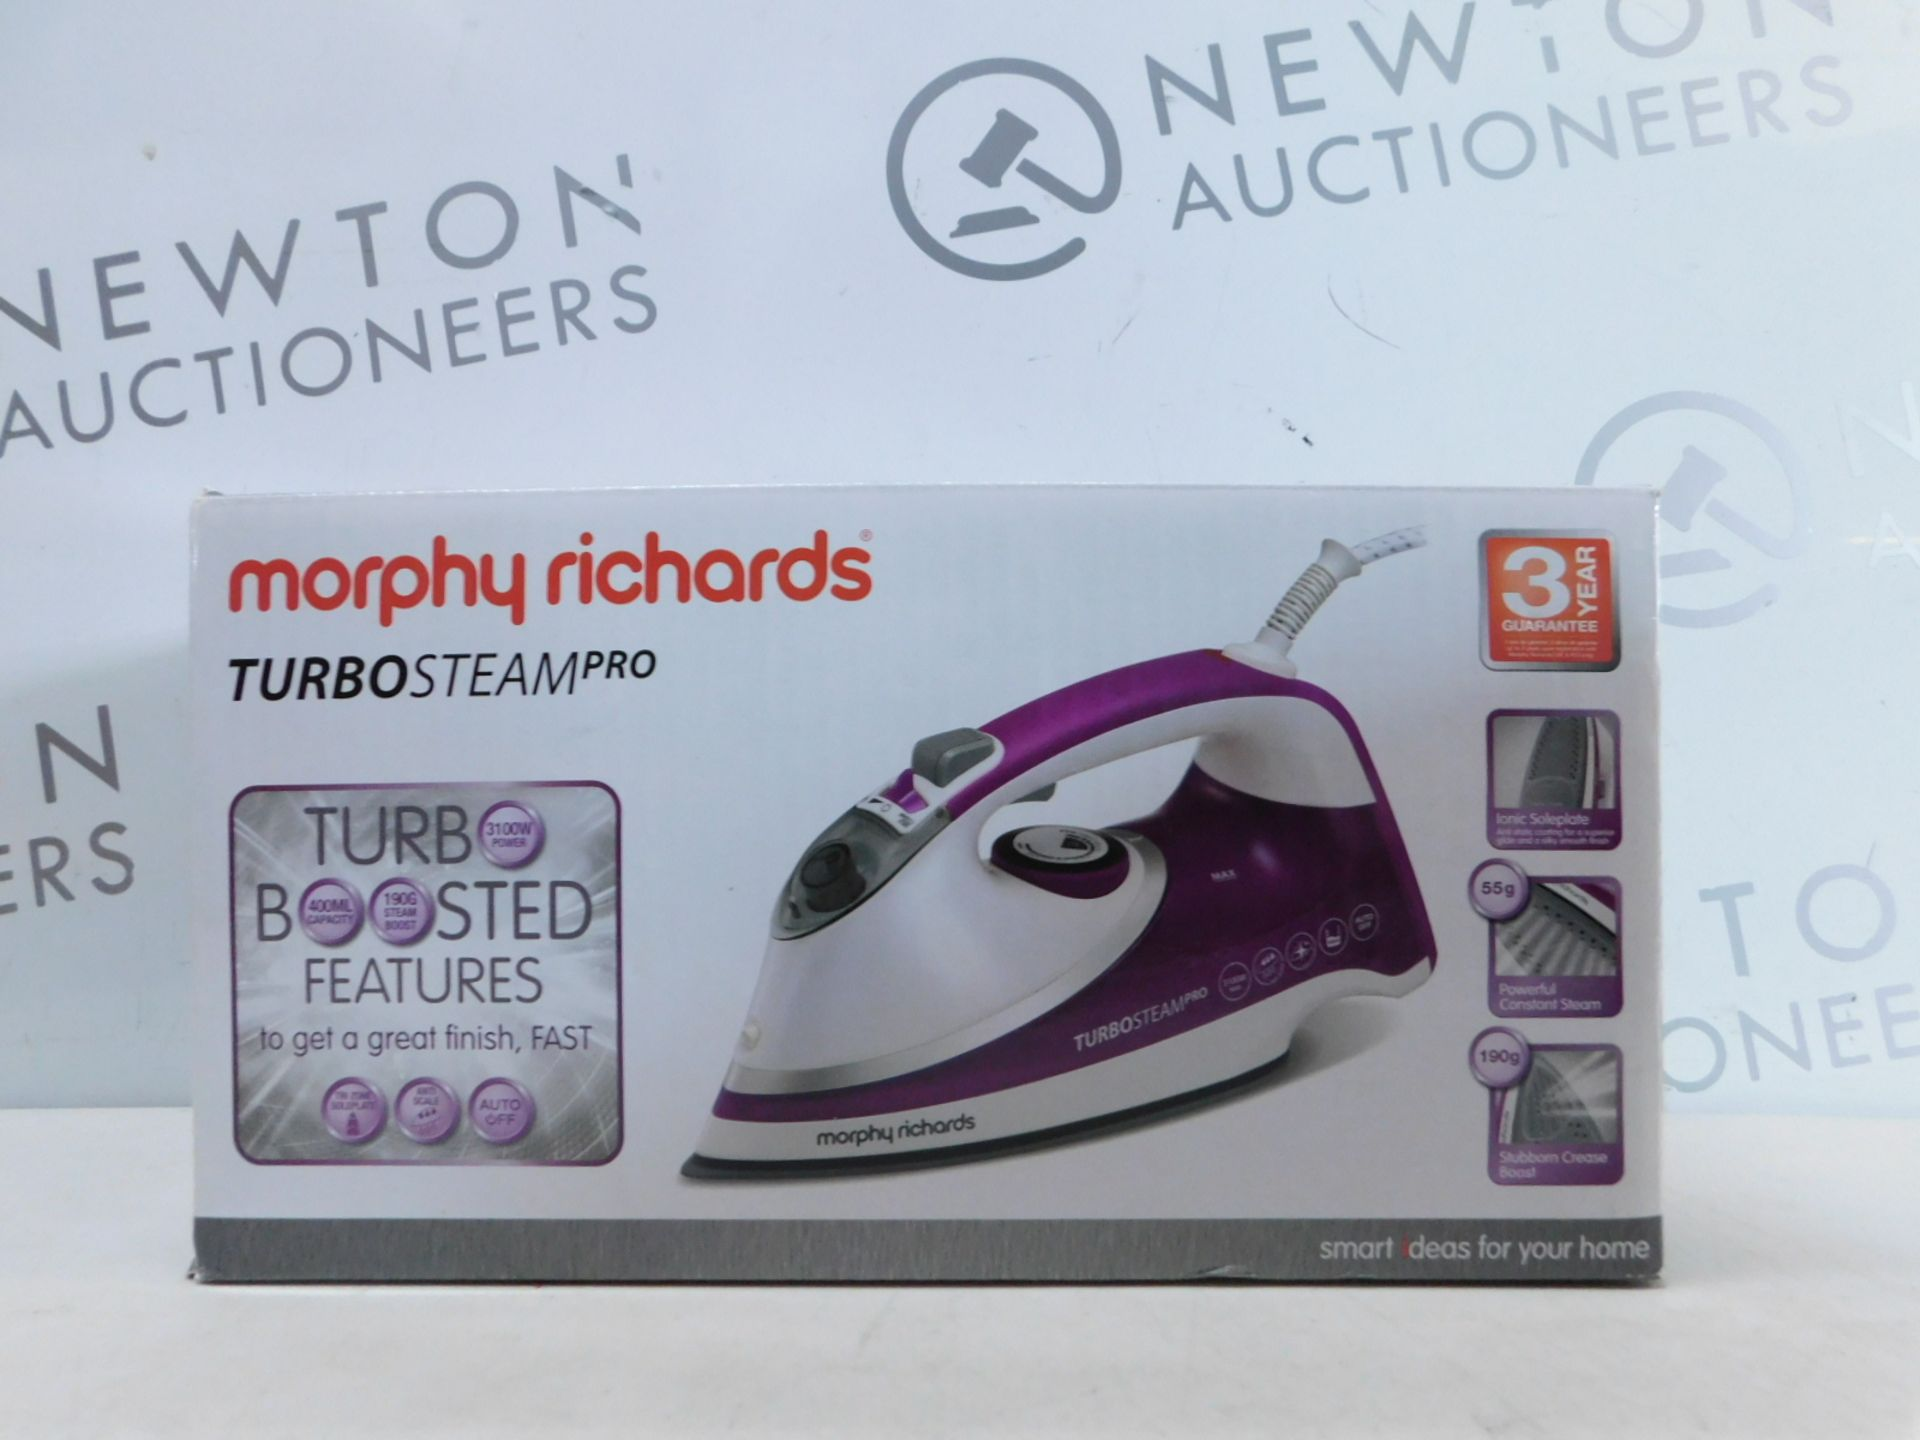 Lot 298 - 1 BOXED MORPHY RICHARDS TURBO STEAM PRO IRON RRP £44.99